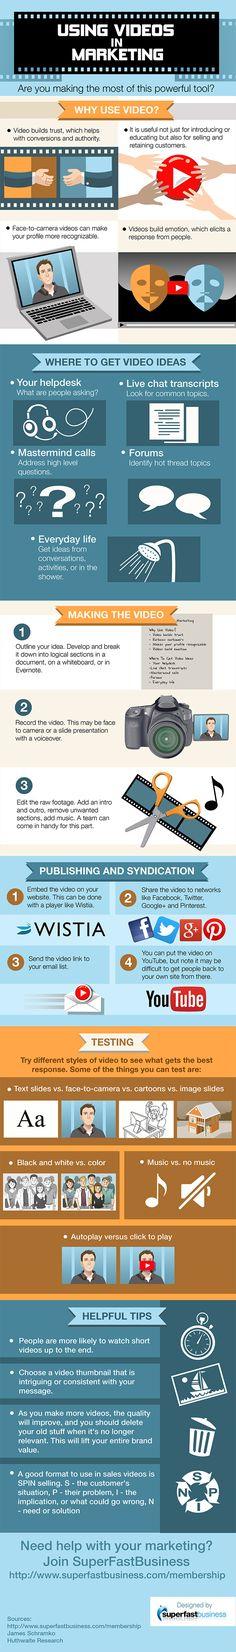 How to Use Video as Part of Your Online Marketing Strategy #Infographic